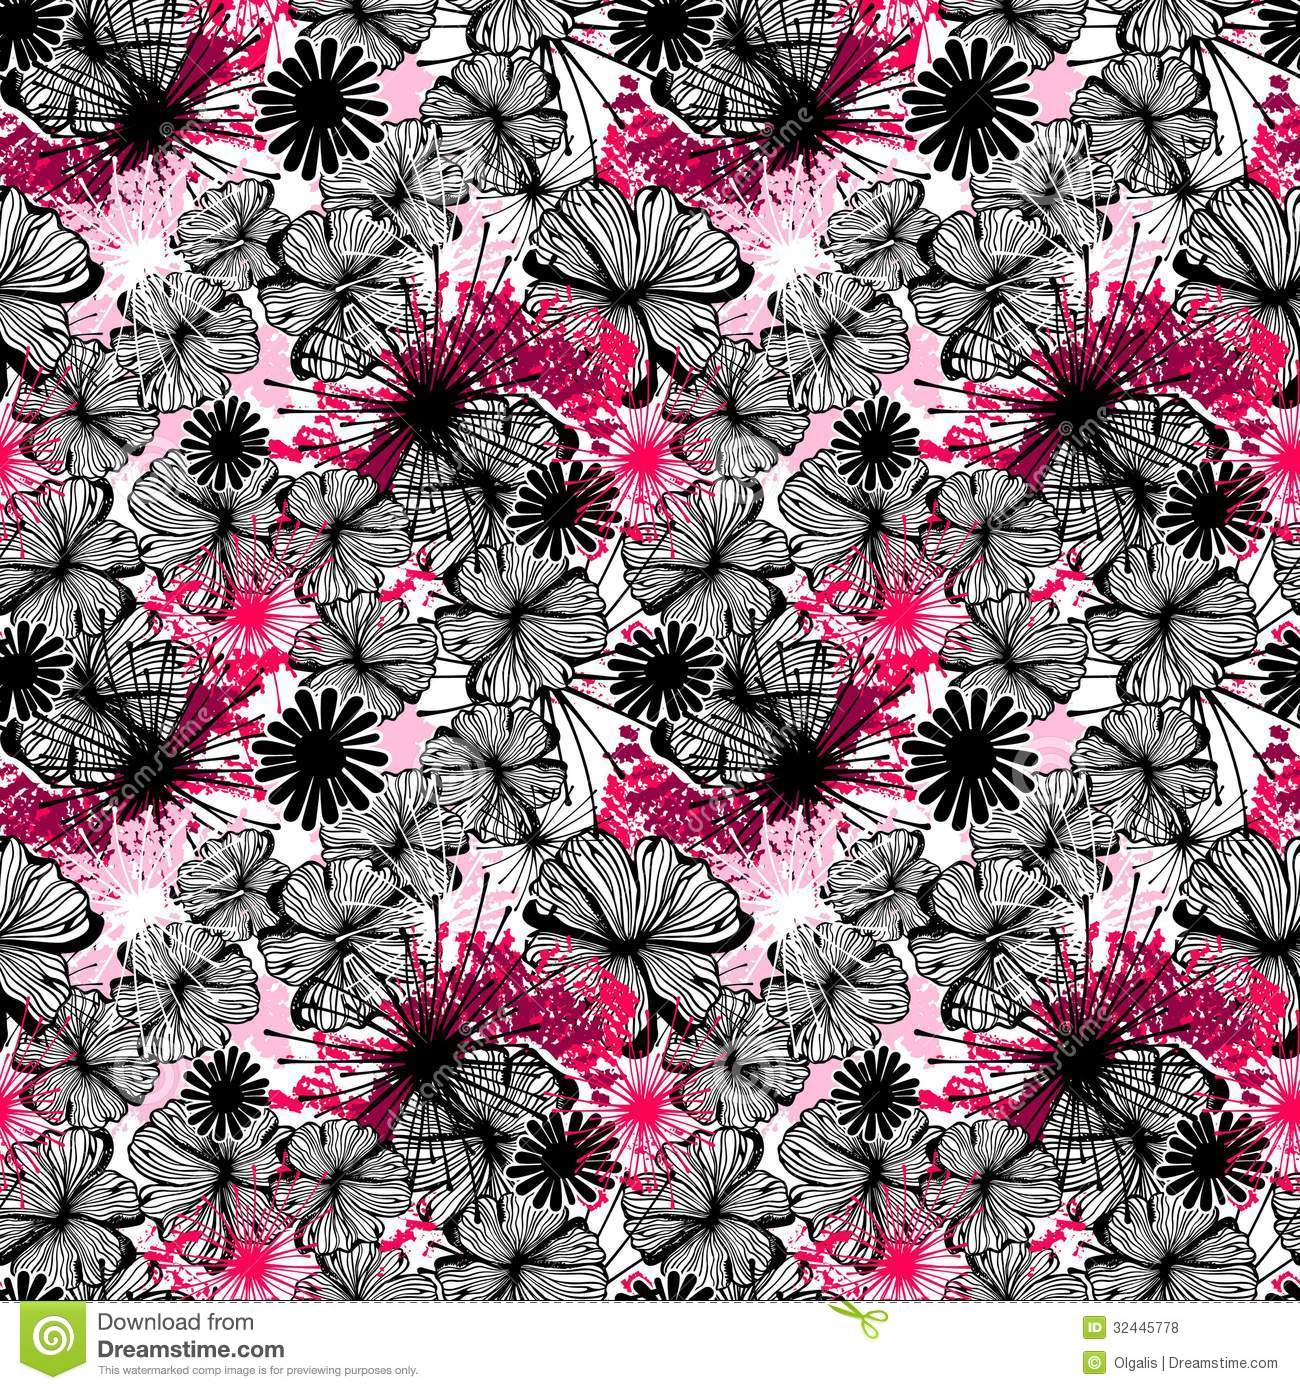 Doodle Seamless Flower Ink Pattern Royalty Free Stock Photos   Image